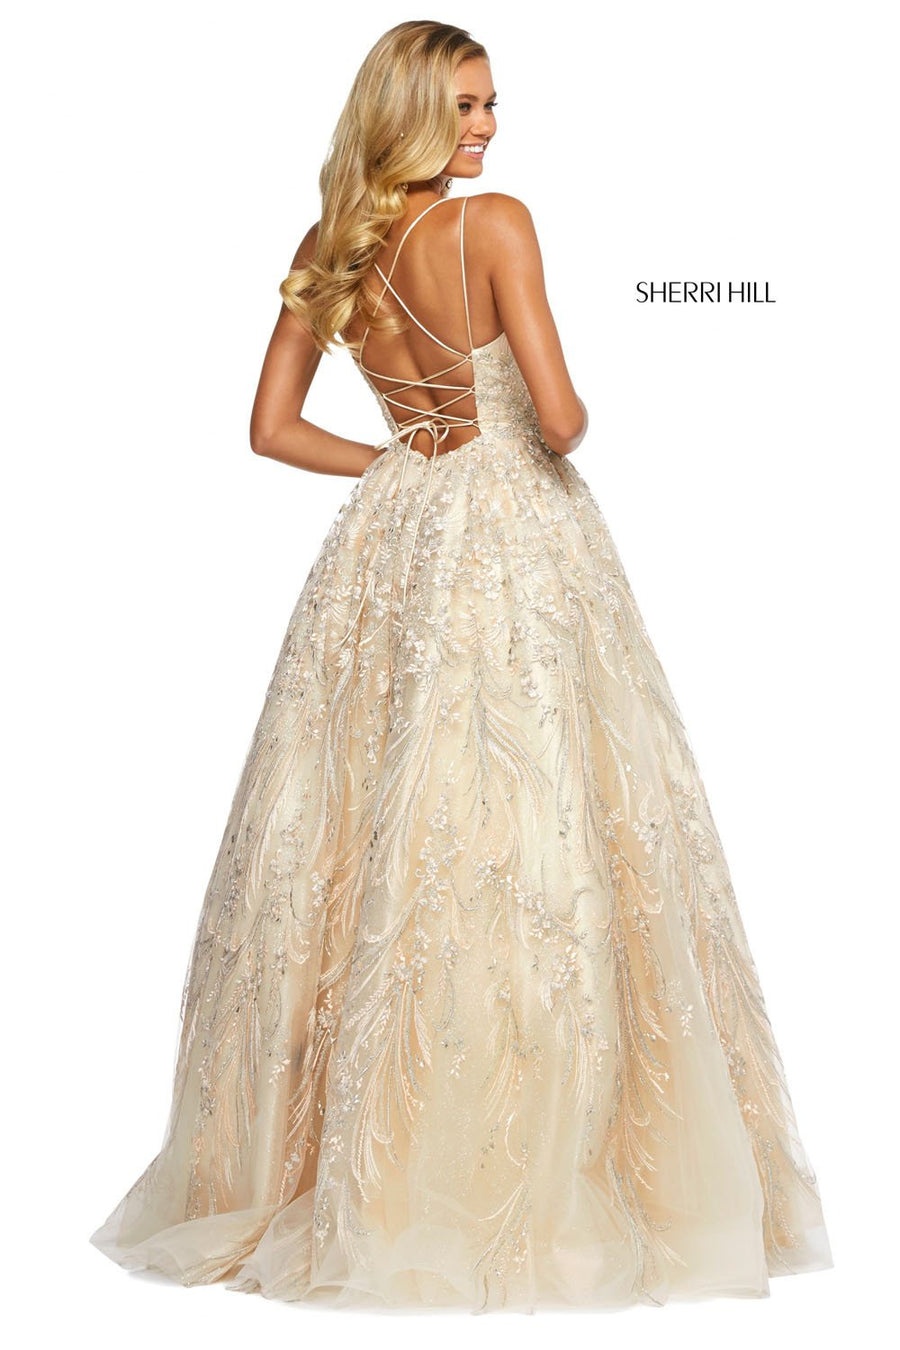 Sherri Hill 53519 prom dress images.  Sherri Hill 53519 is available in these colors: Champagne, Periwinkle, Light Blue, Blush.